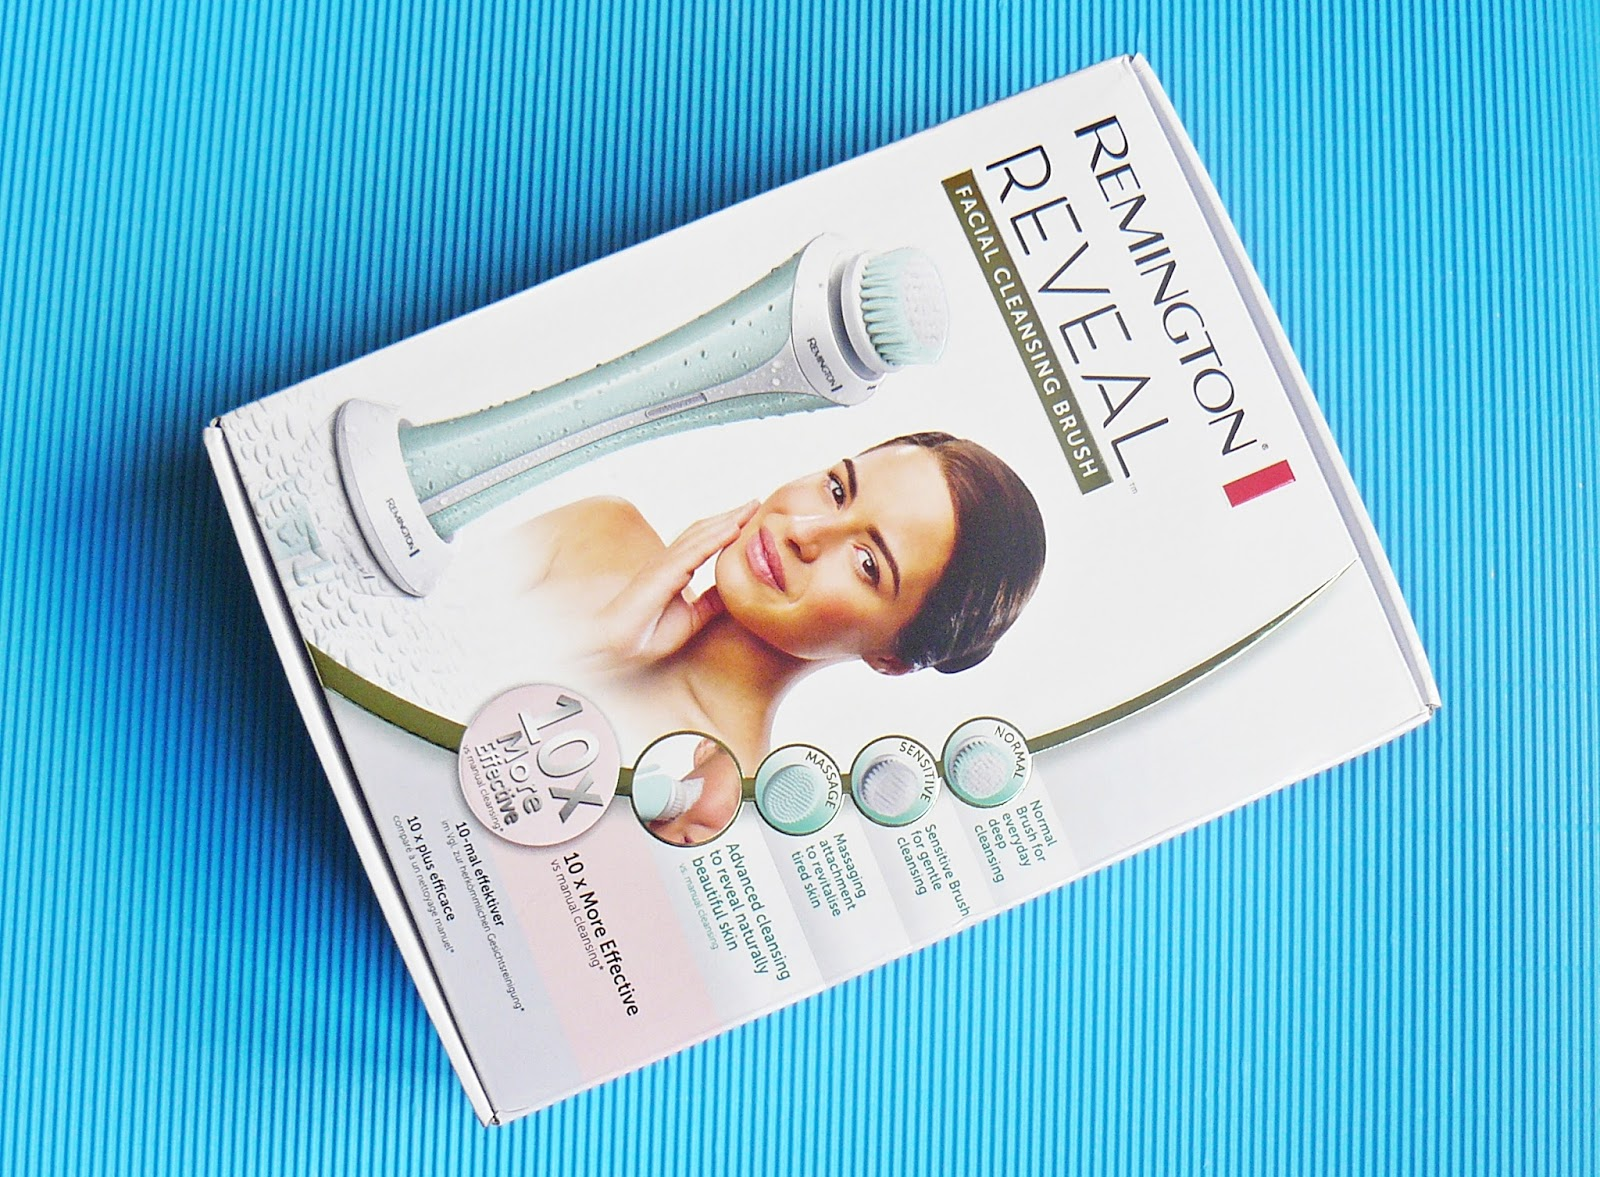 REMINGTON FC1000 REVEAL FACIAL CLEANSING BRUSH